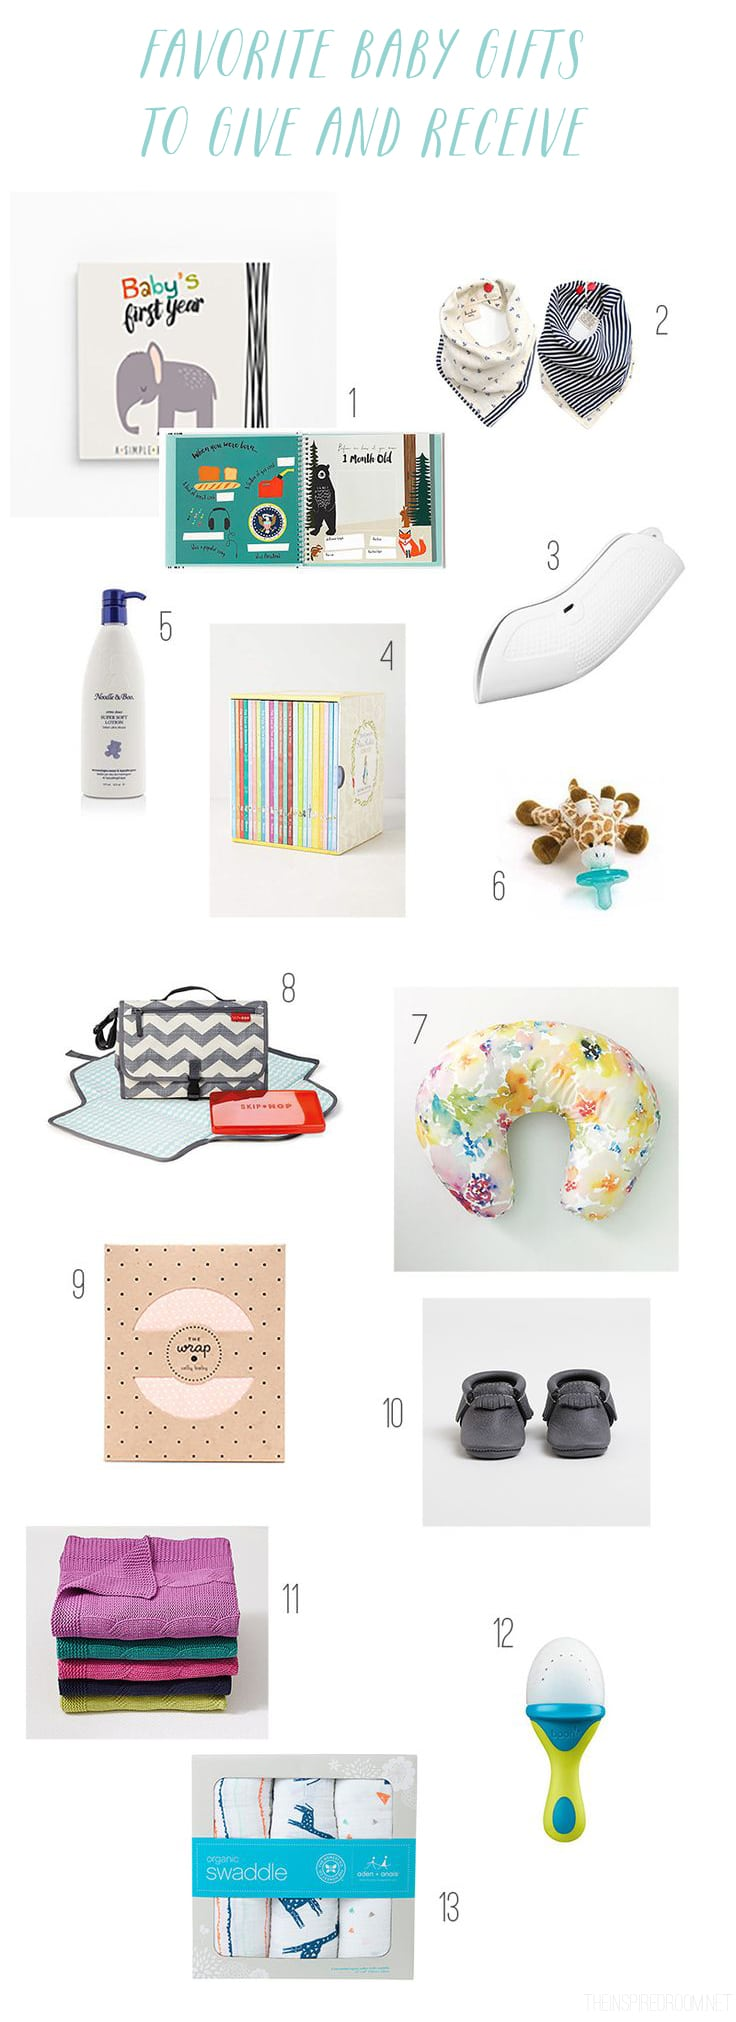 Favorite Baby Gifts to Give and Receive - The Inspired Room blog